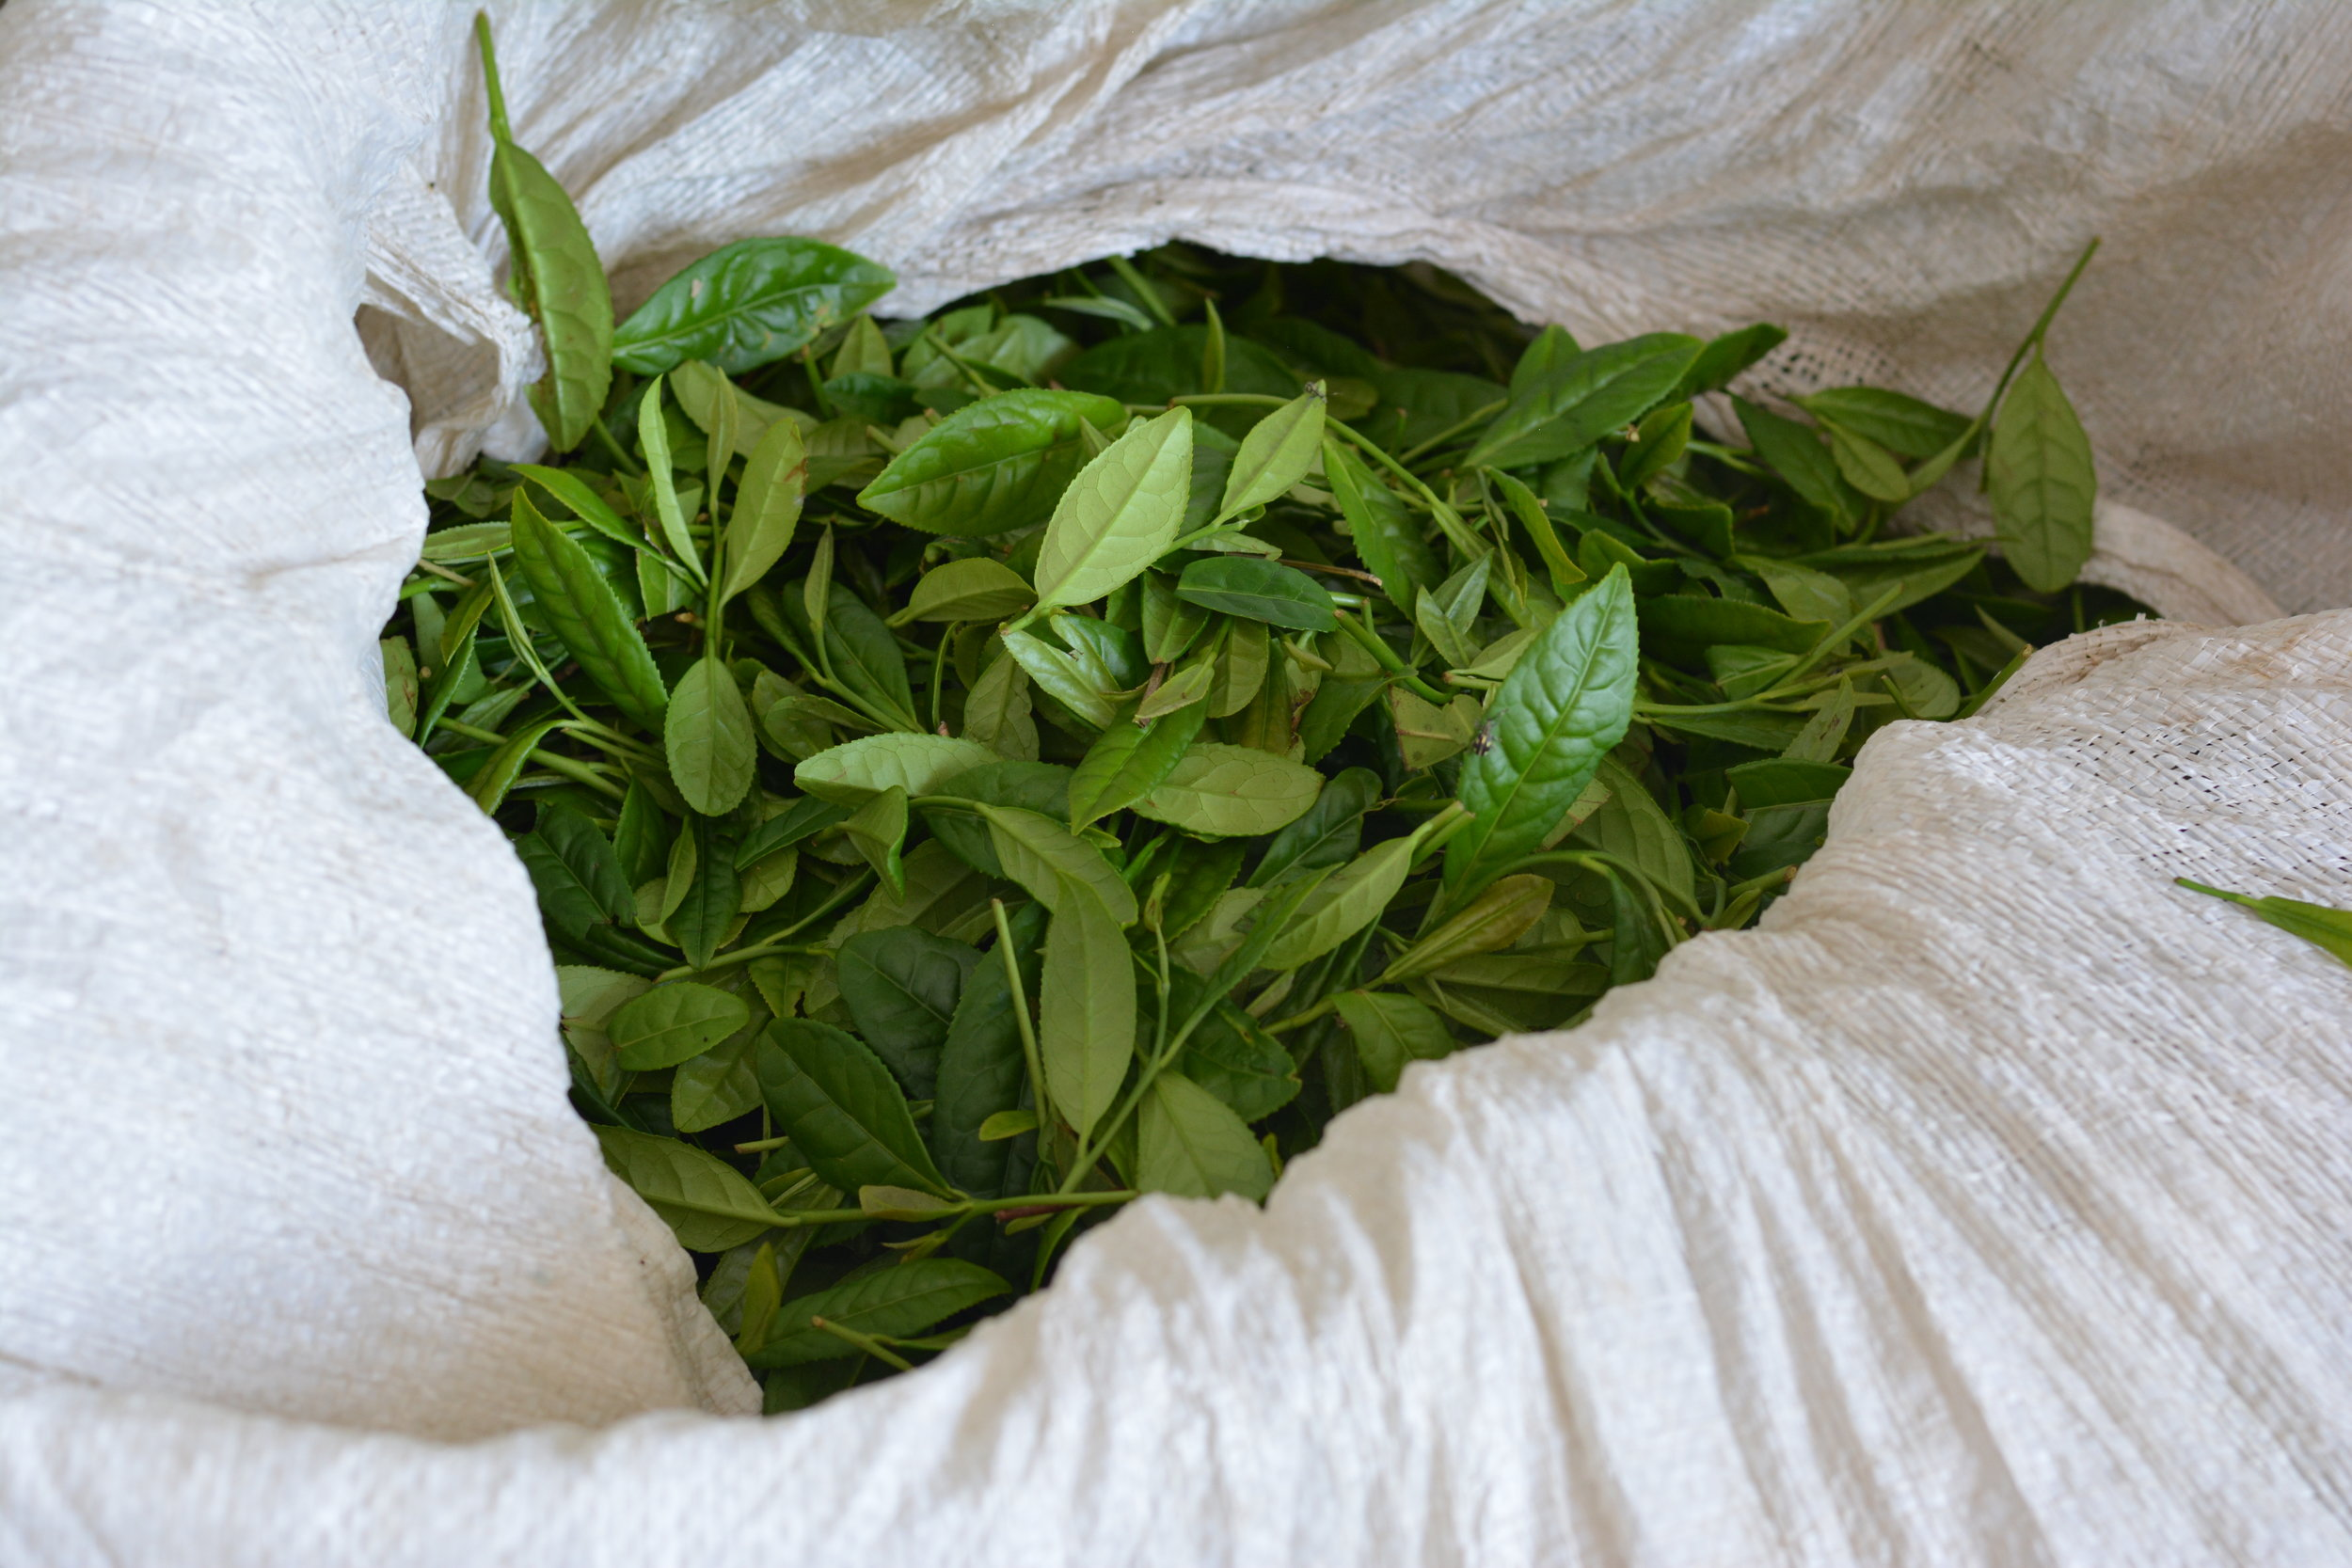 Five kilograms of green leaves will produce one kilogram of leaves for tea.